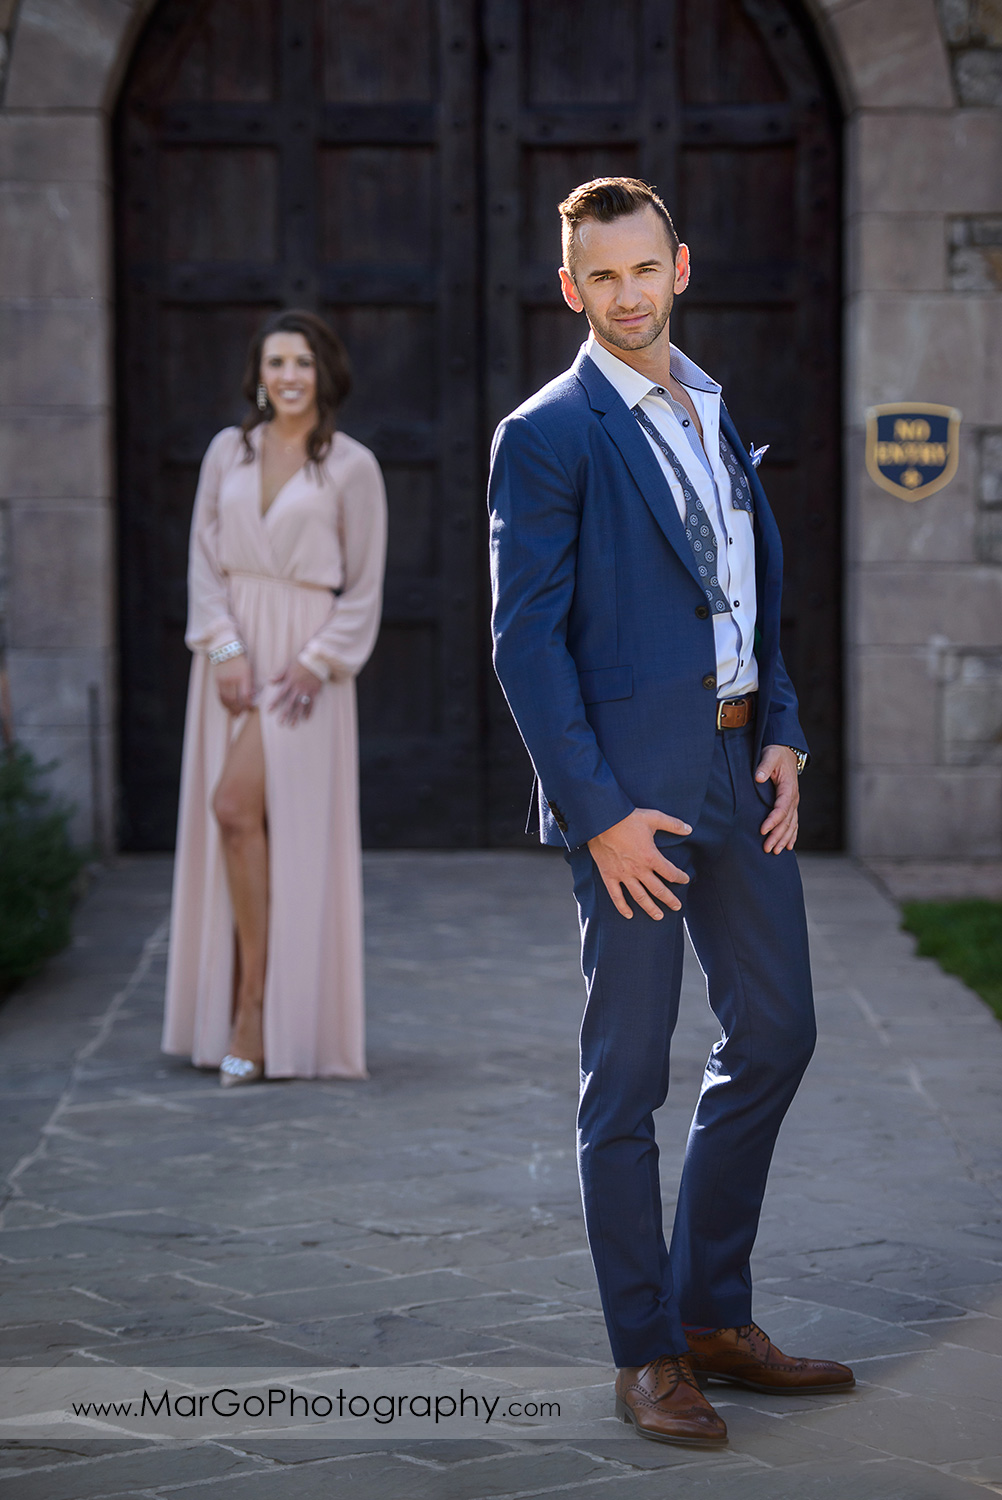 full body portrait of man in blue suit standing in front of woman in pink dress during Napa Valley engagement session at Castello di Amorosa in Calistoga